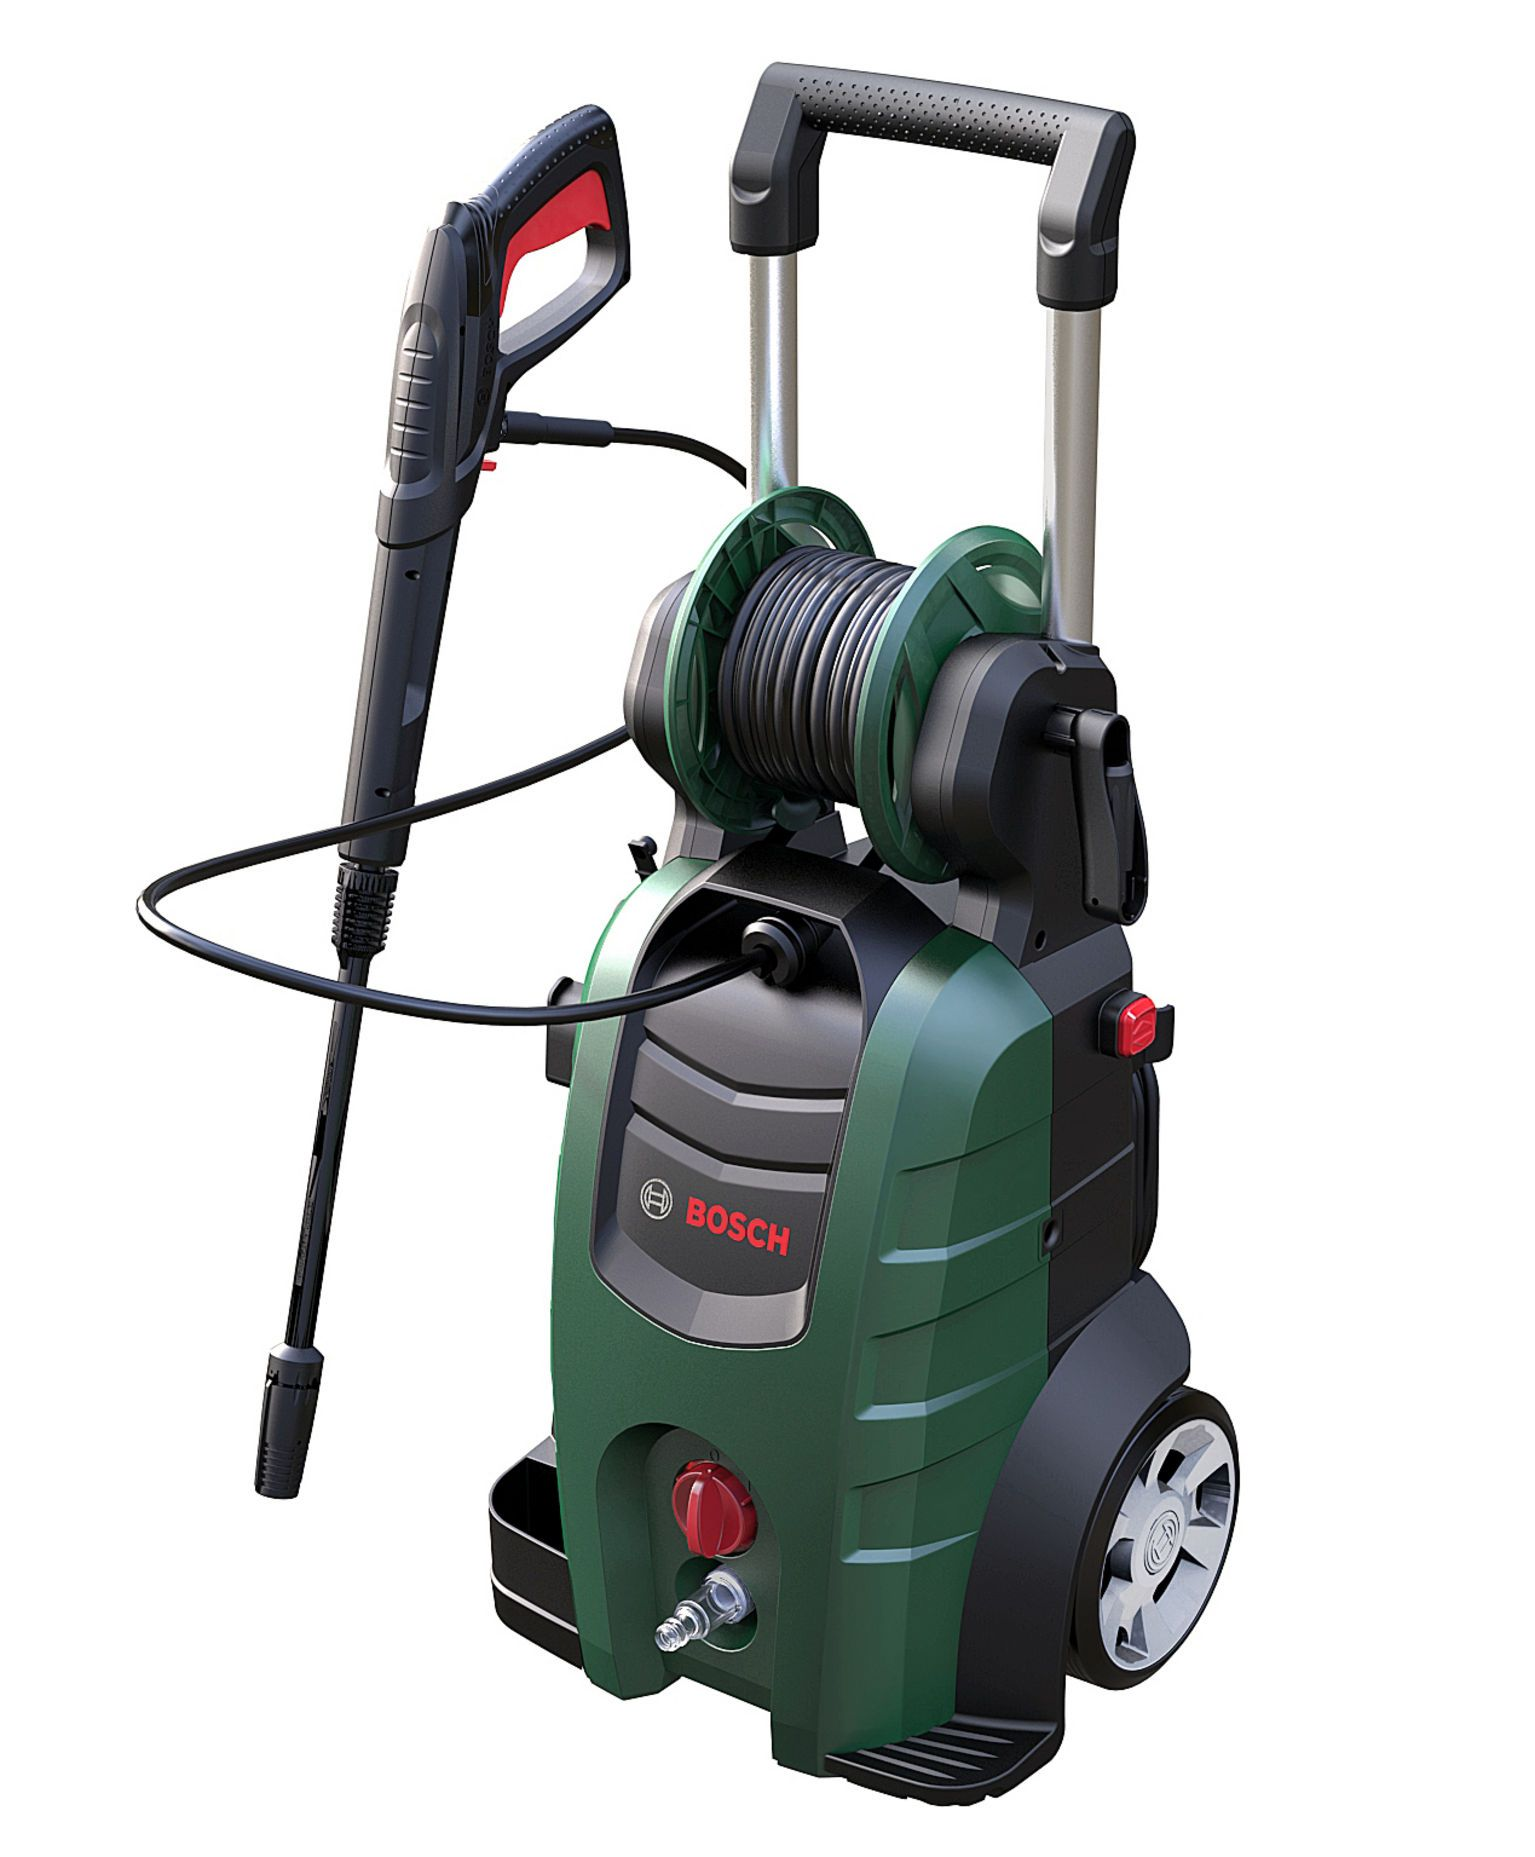 Bosch Aqt42 13 Aqt45 14x High Pressure Washer Beitragsdetails If Online Exhibition Diy Pressure Washing Best Pressure Washer Diy Plumbing